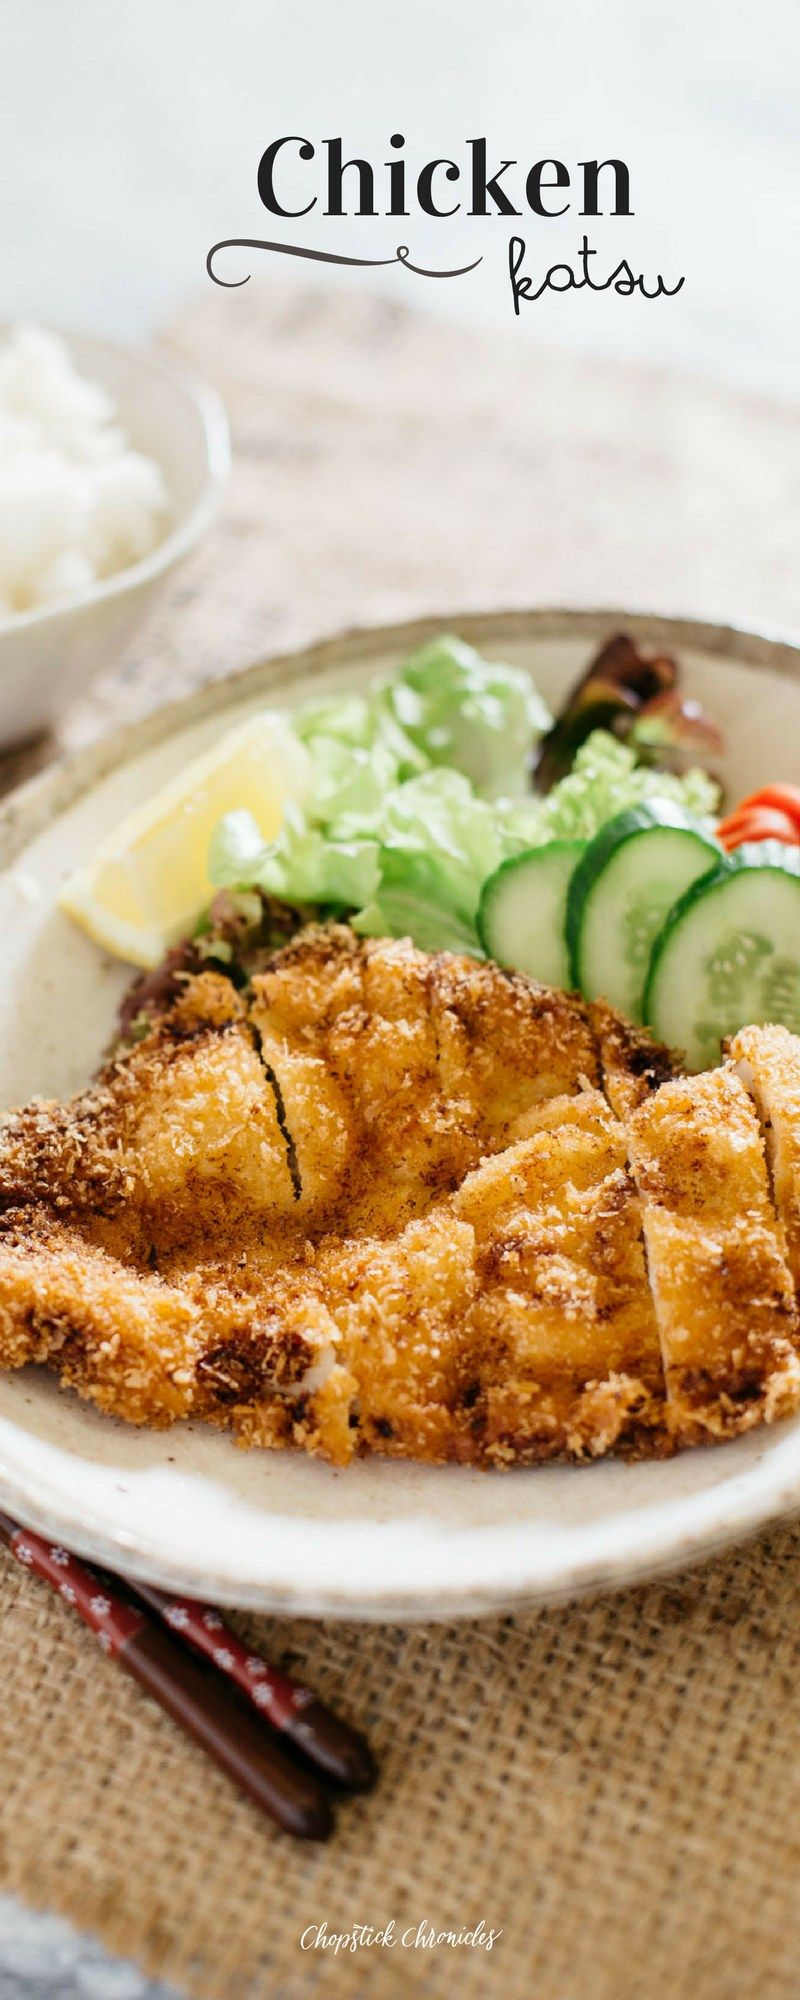 Chicken katsu food and drink pinterest poultry dinners and chicken katsu japanese dishesjapanese foodjapanese cuisinejapanese sweetdinner entreesdinner recipesaustralian forumfinder Images